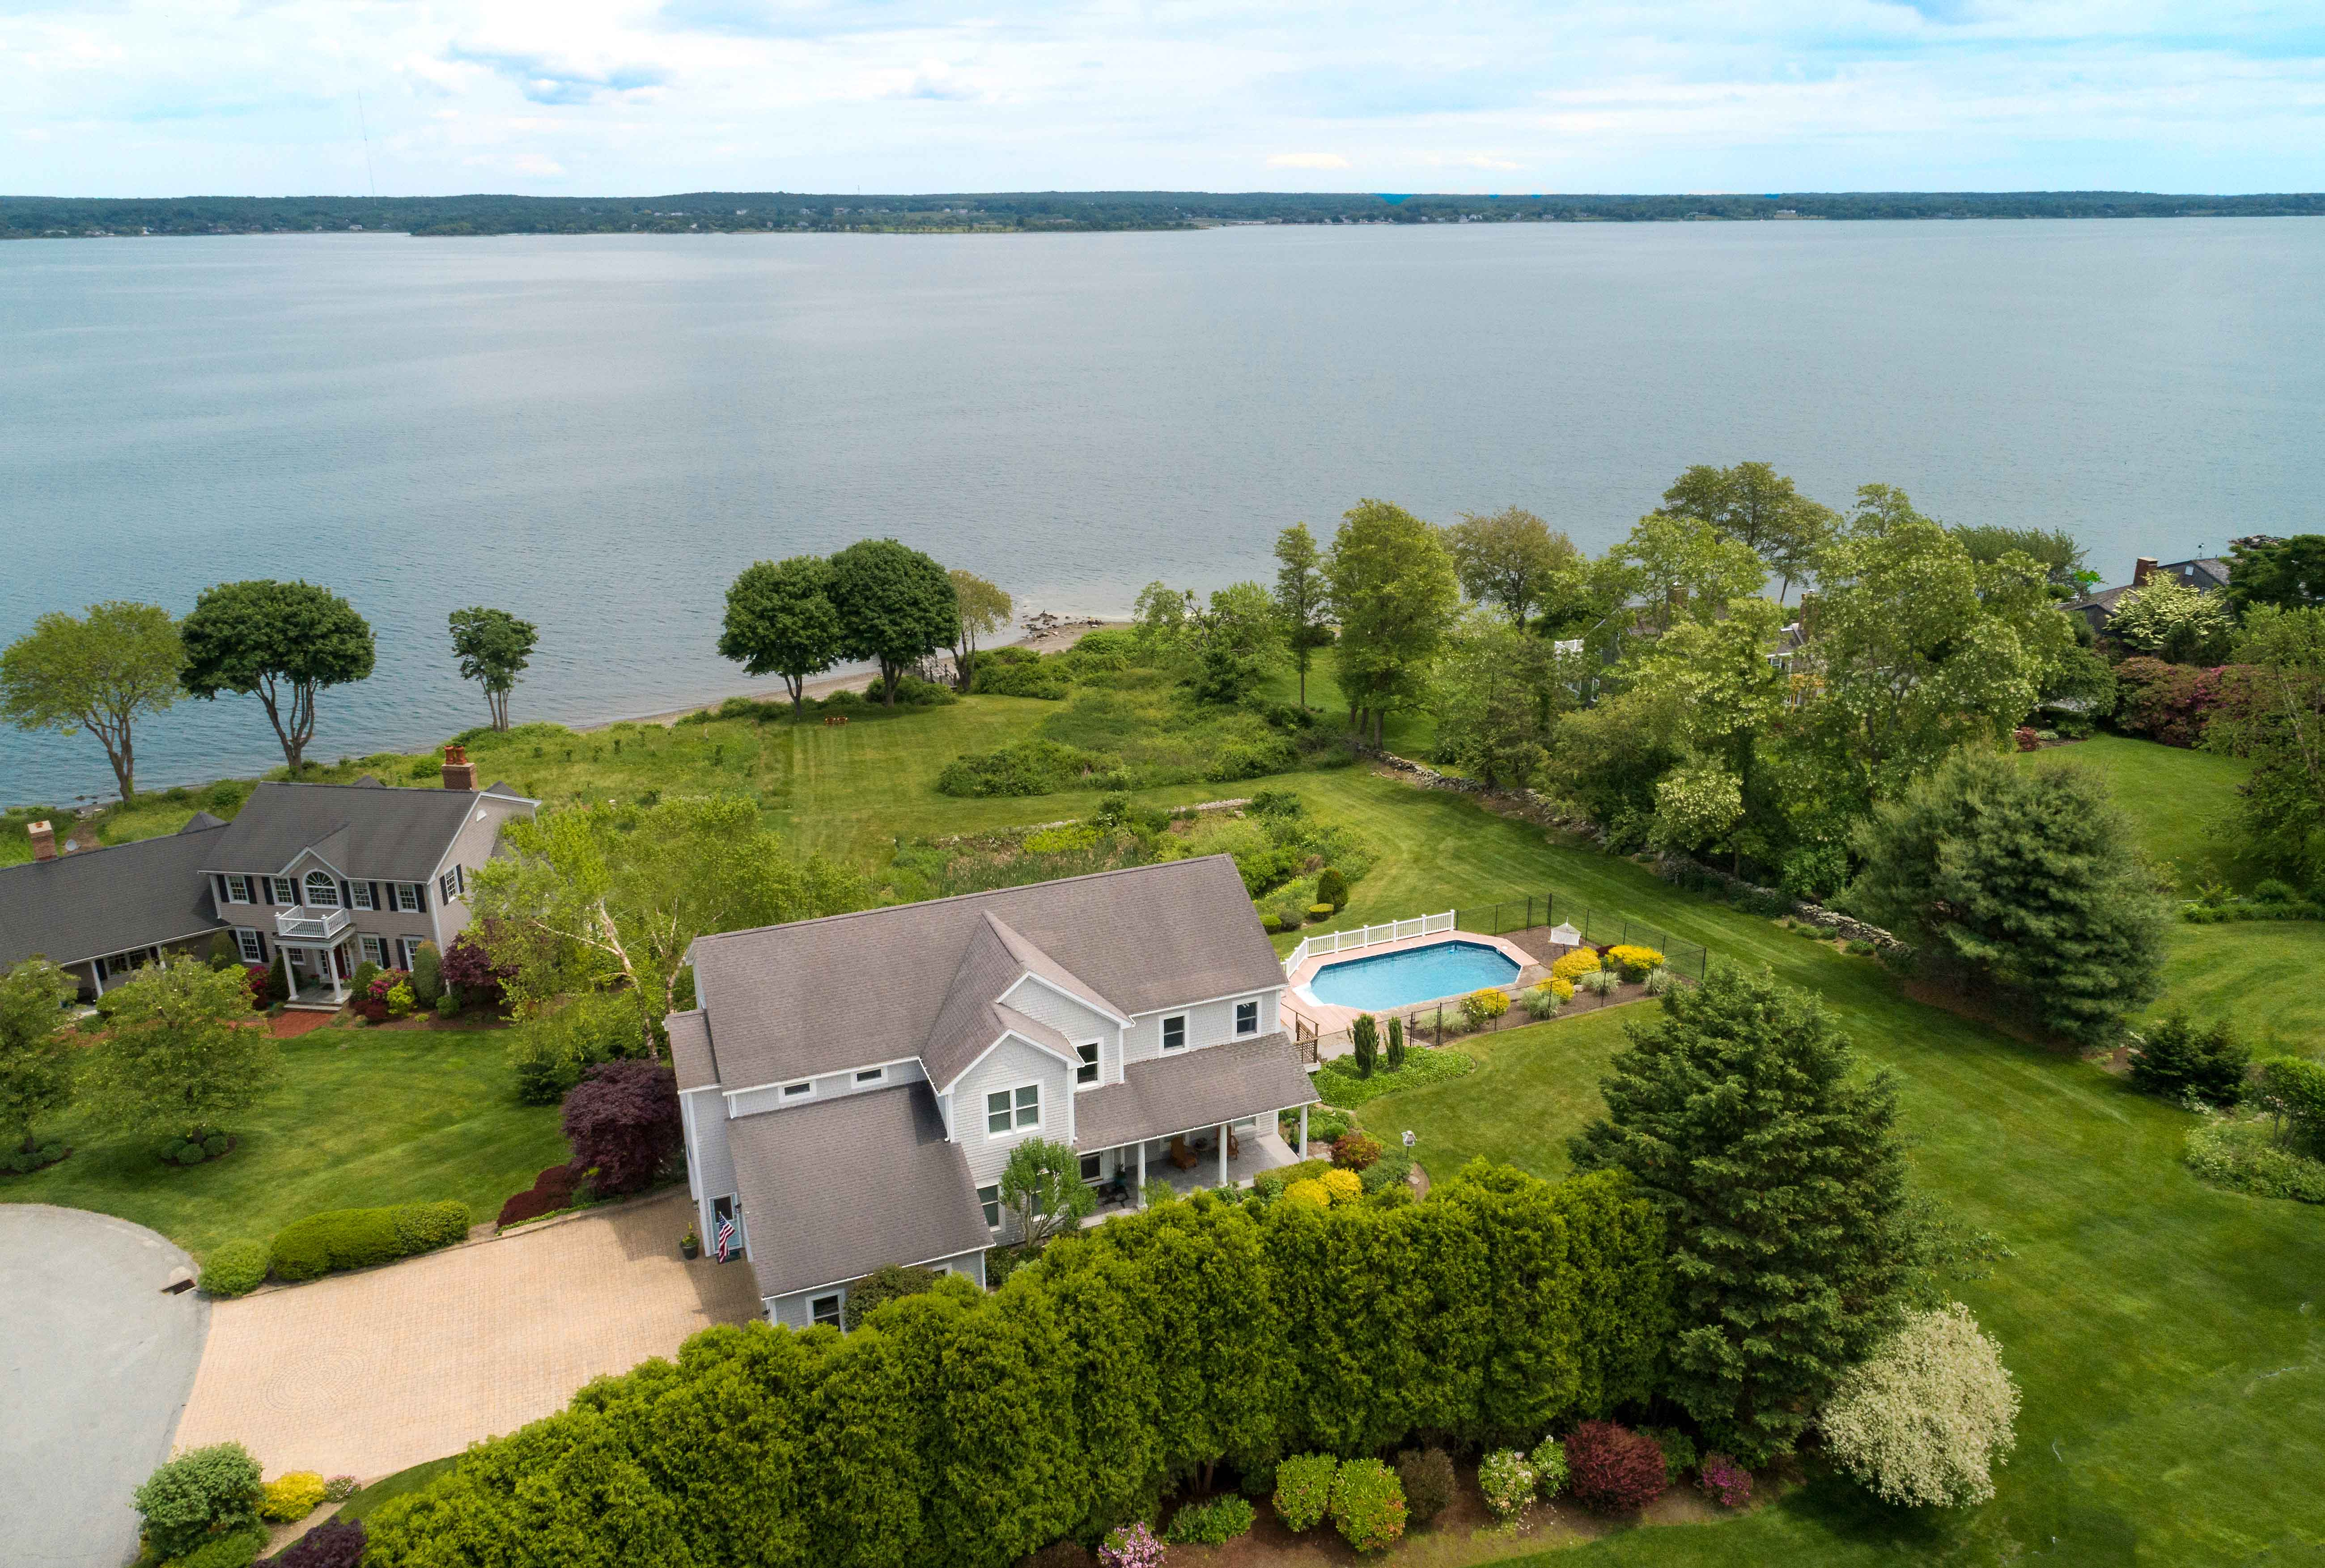 Portsmouth Home Sells For $1.775 Million, Is Second Highest Sale In That Community This Year